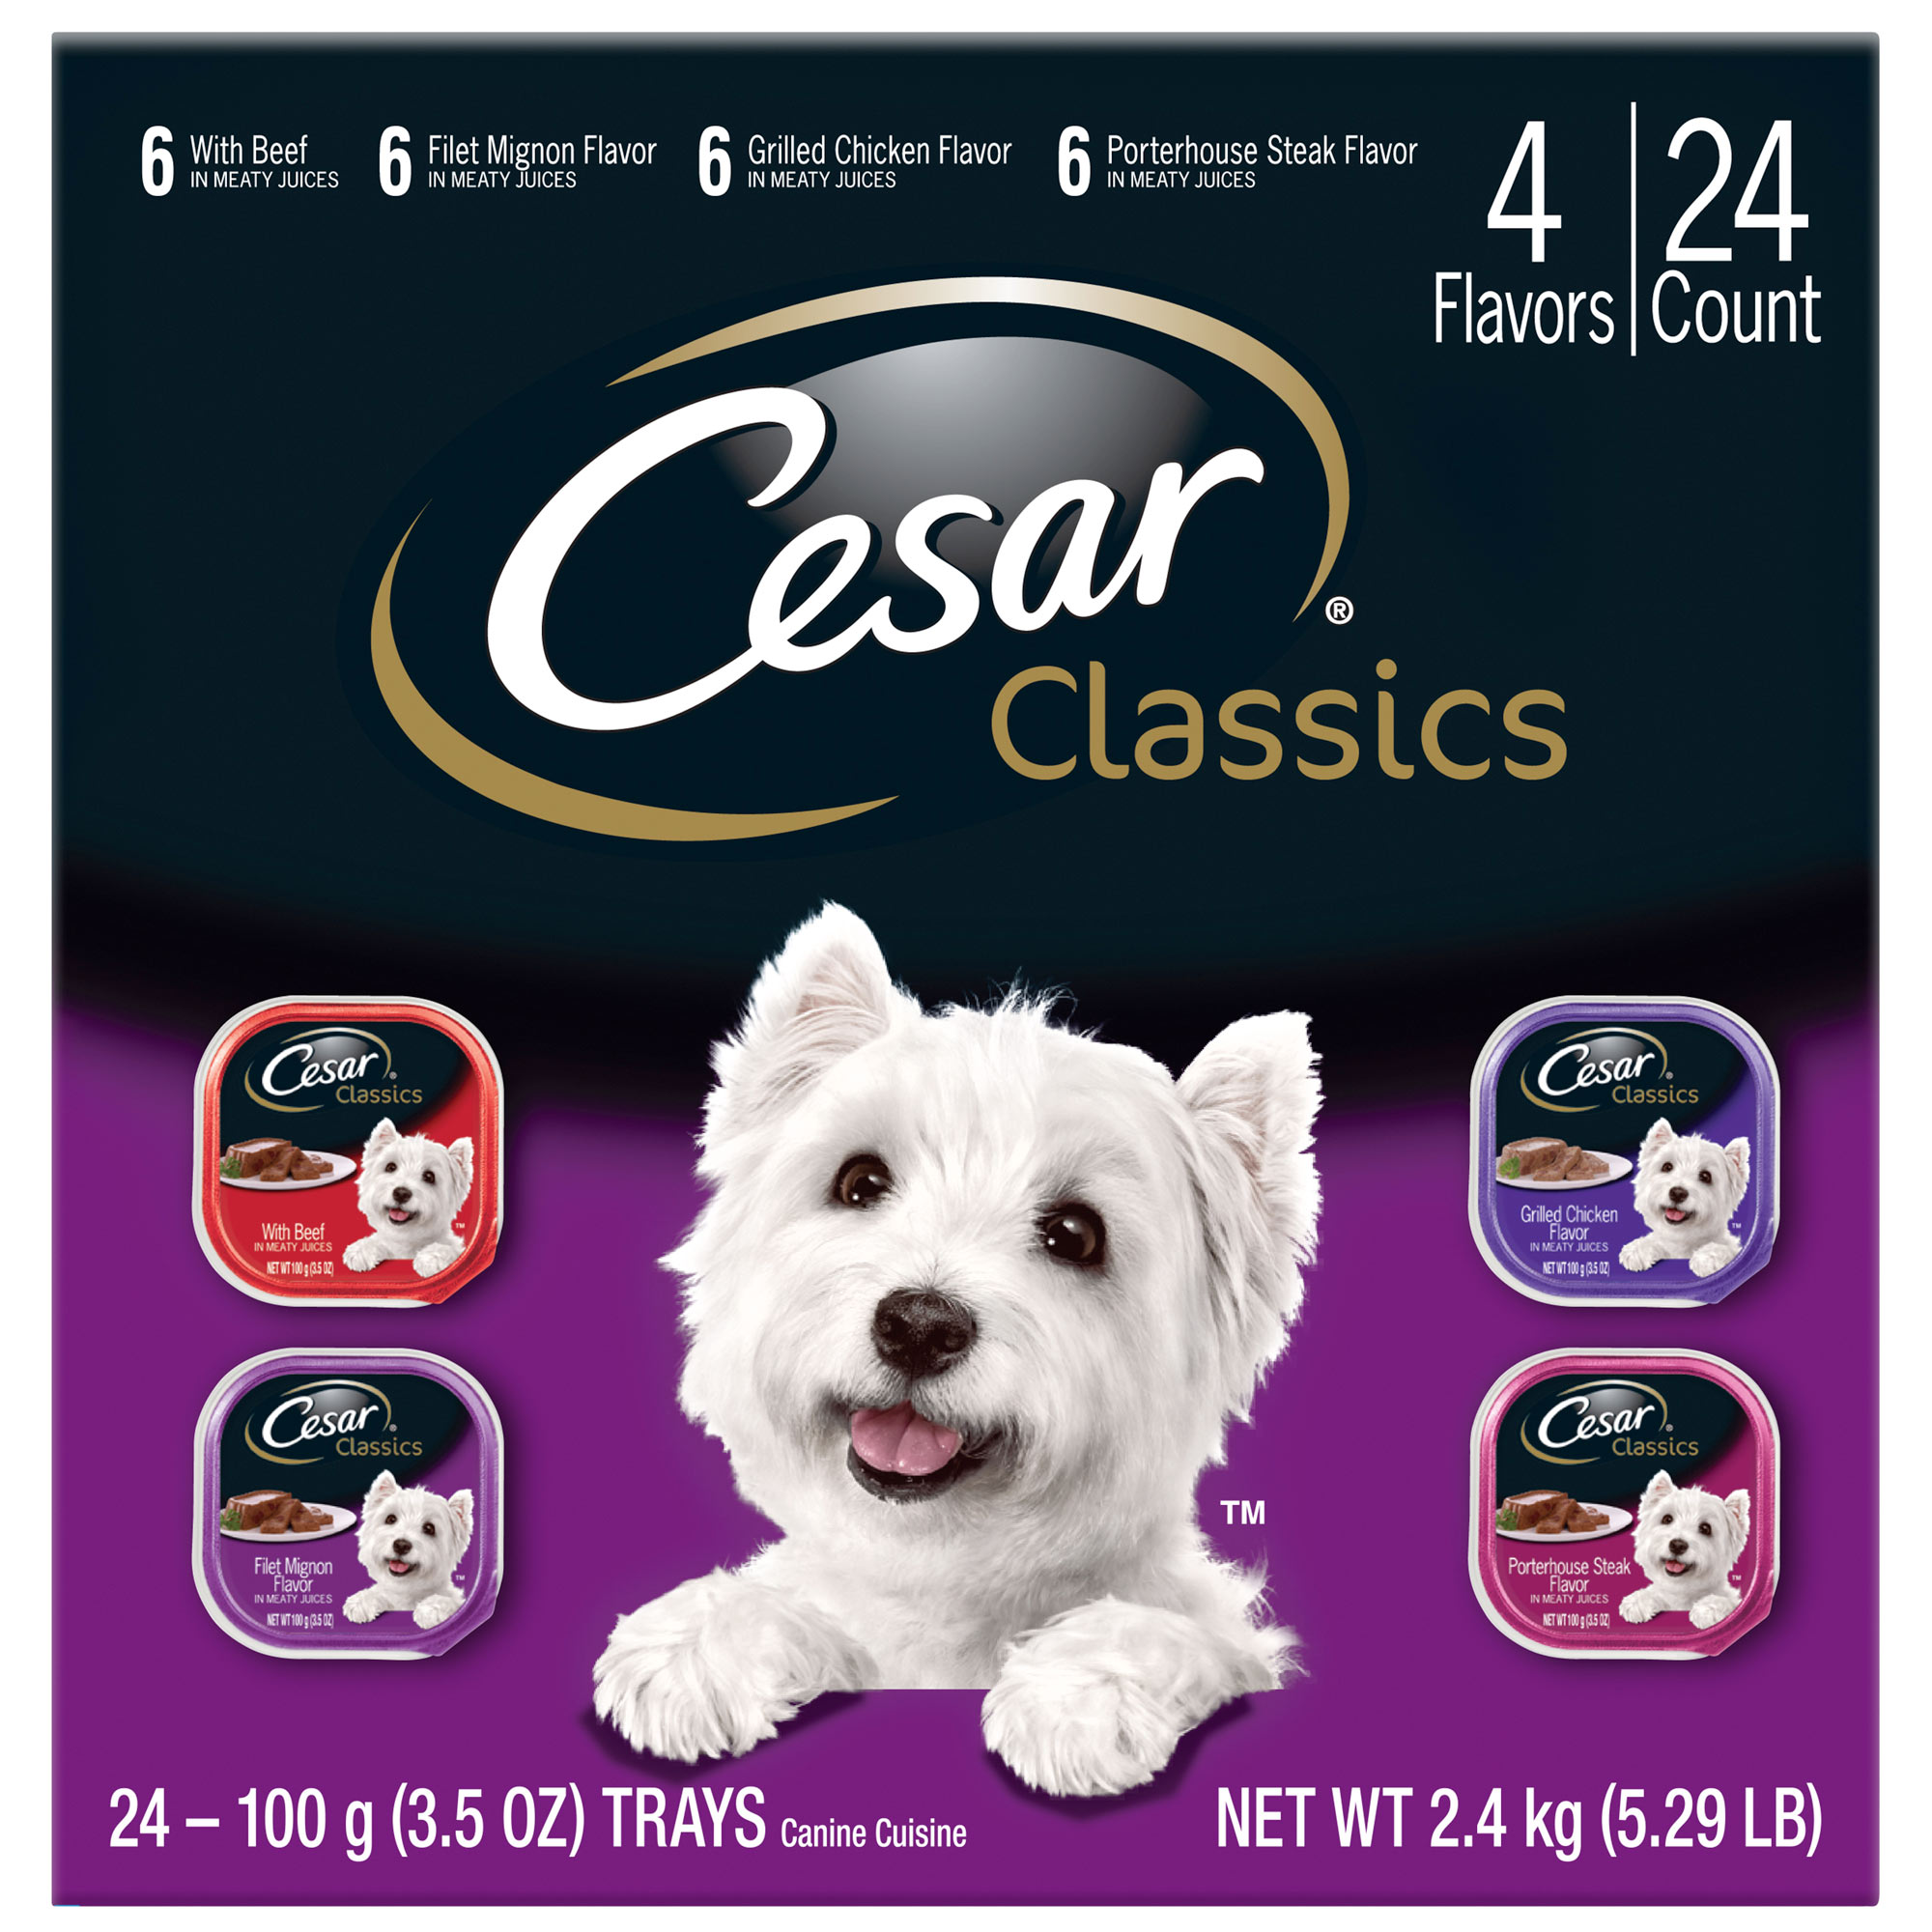 Cesar Canine Cuisine Variety Pack Dog Food, Trays 3.5 Oz, Case Of 24